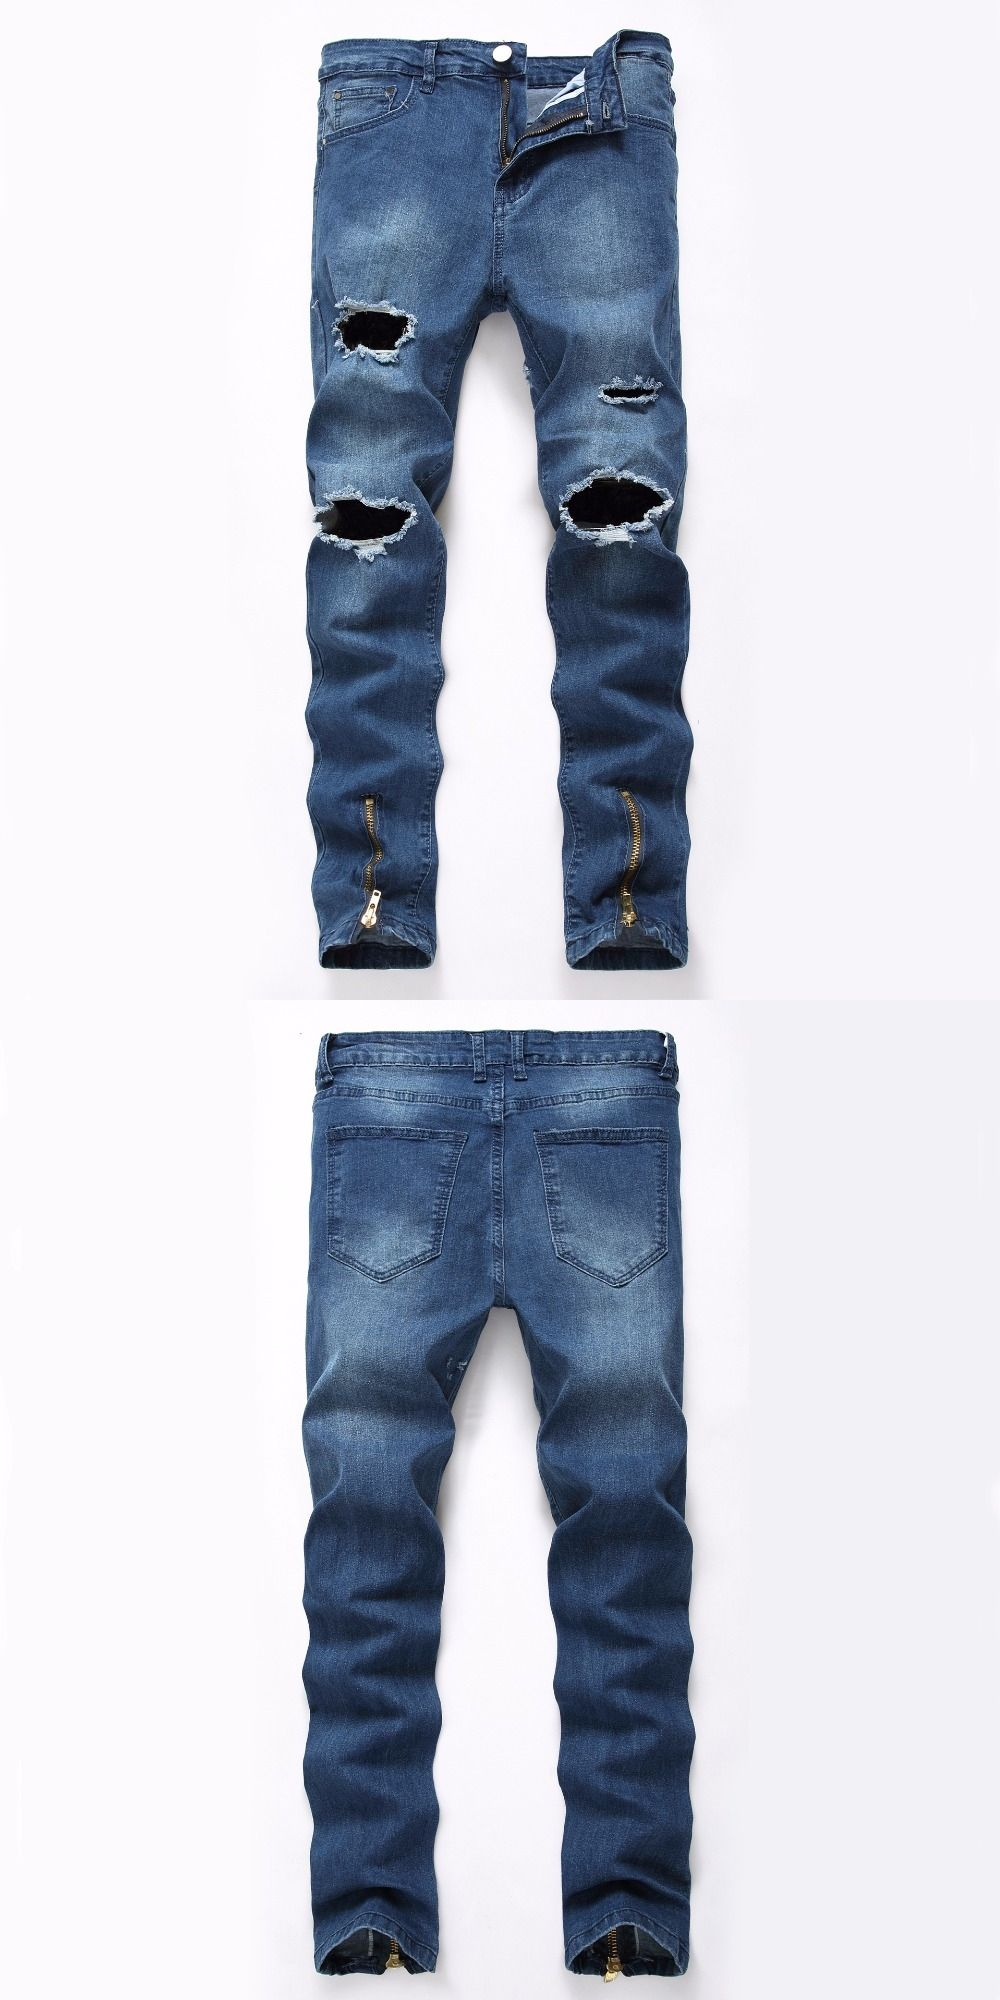 ac45daa7d4b Men Brand Designer Slim Fit Ripped Jeans Fake Zippers Men s Distressed Denim  Joggers Knee Holes Washed